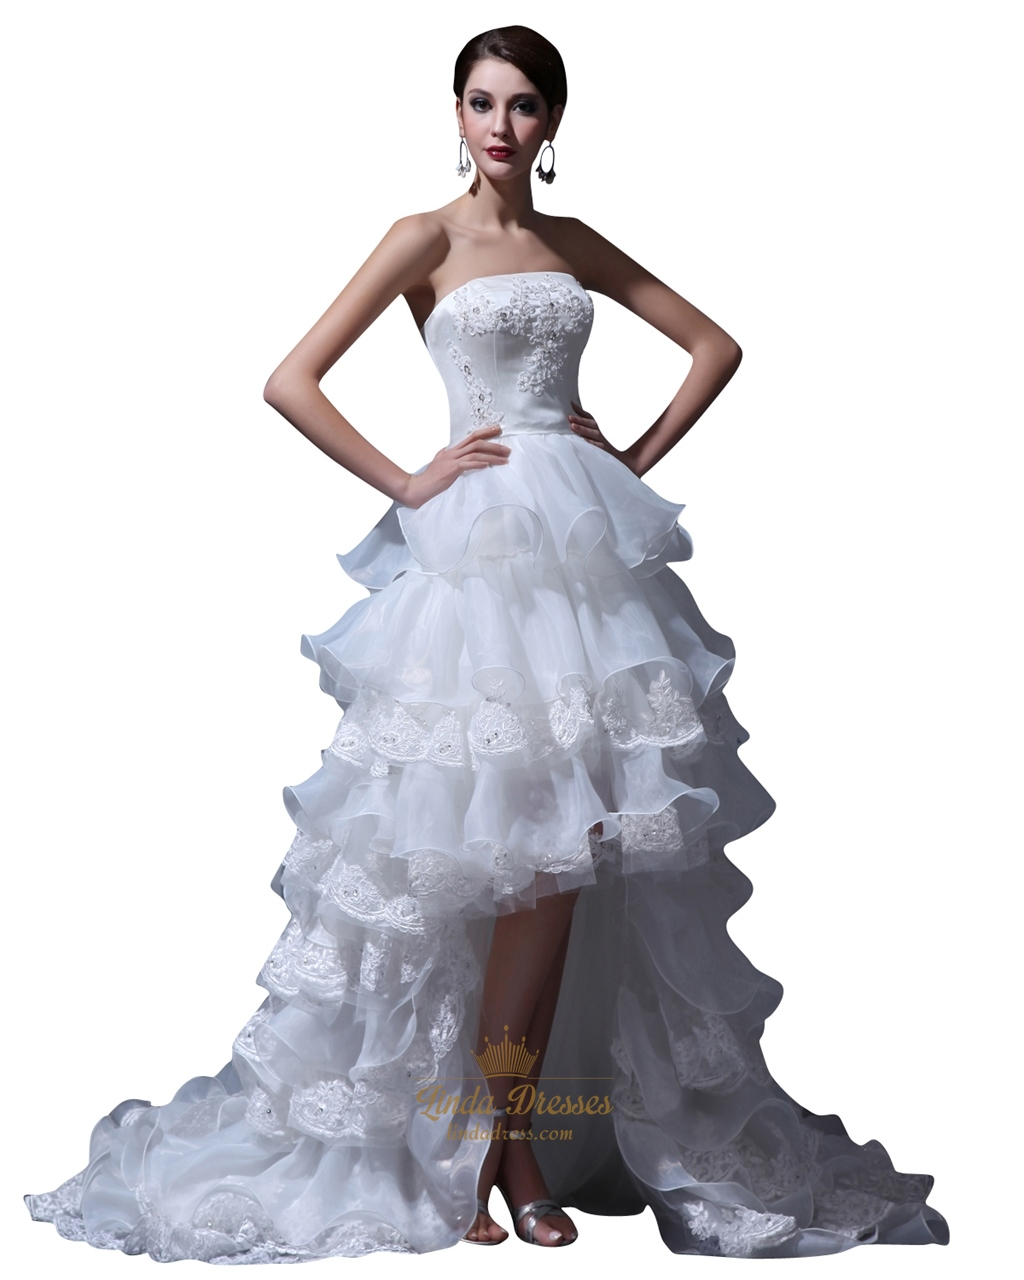 73cfc1f9f97 Ivory Organza Strapless High Low Wedding Dress With Beaded Lace ...